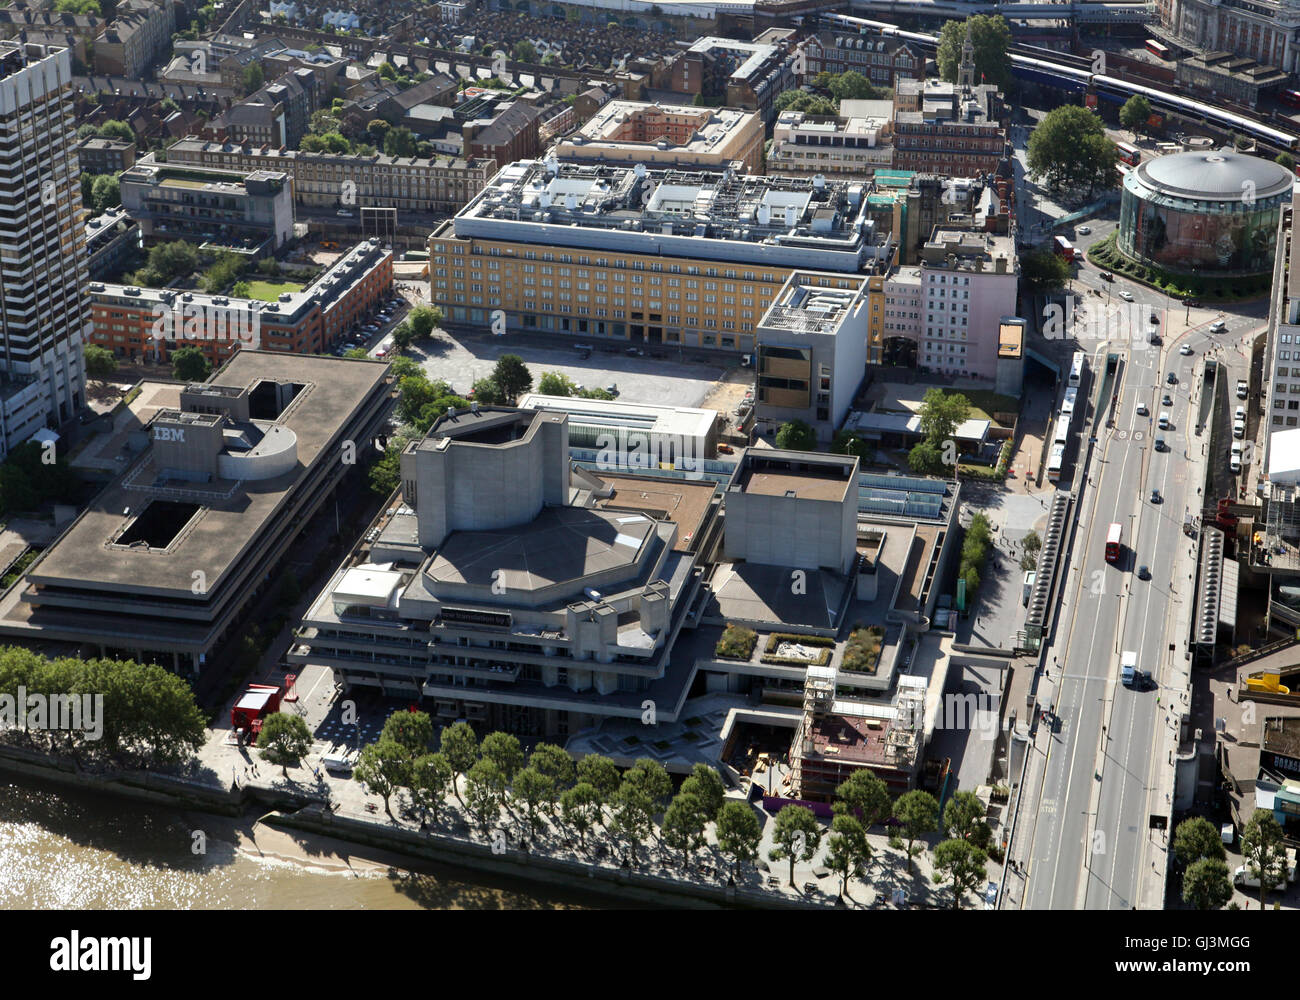 aerial view of National Theatre, London Studios, Cottesloe Theatre, Franklin Williams Building, Lambeth, London - Stock Image